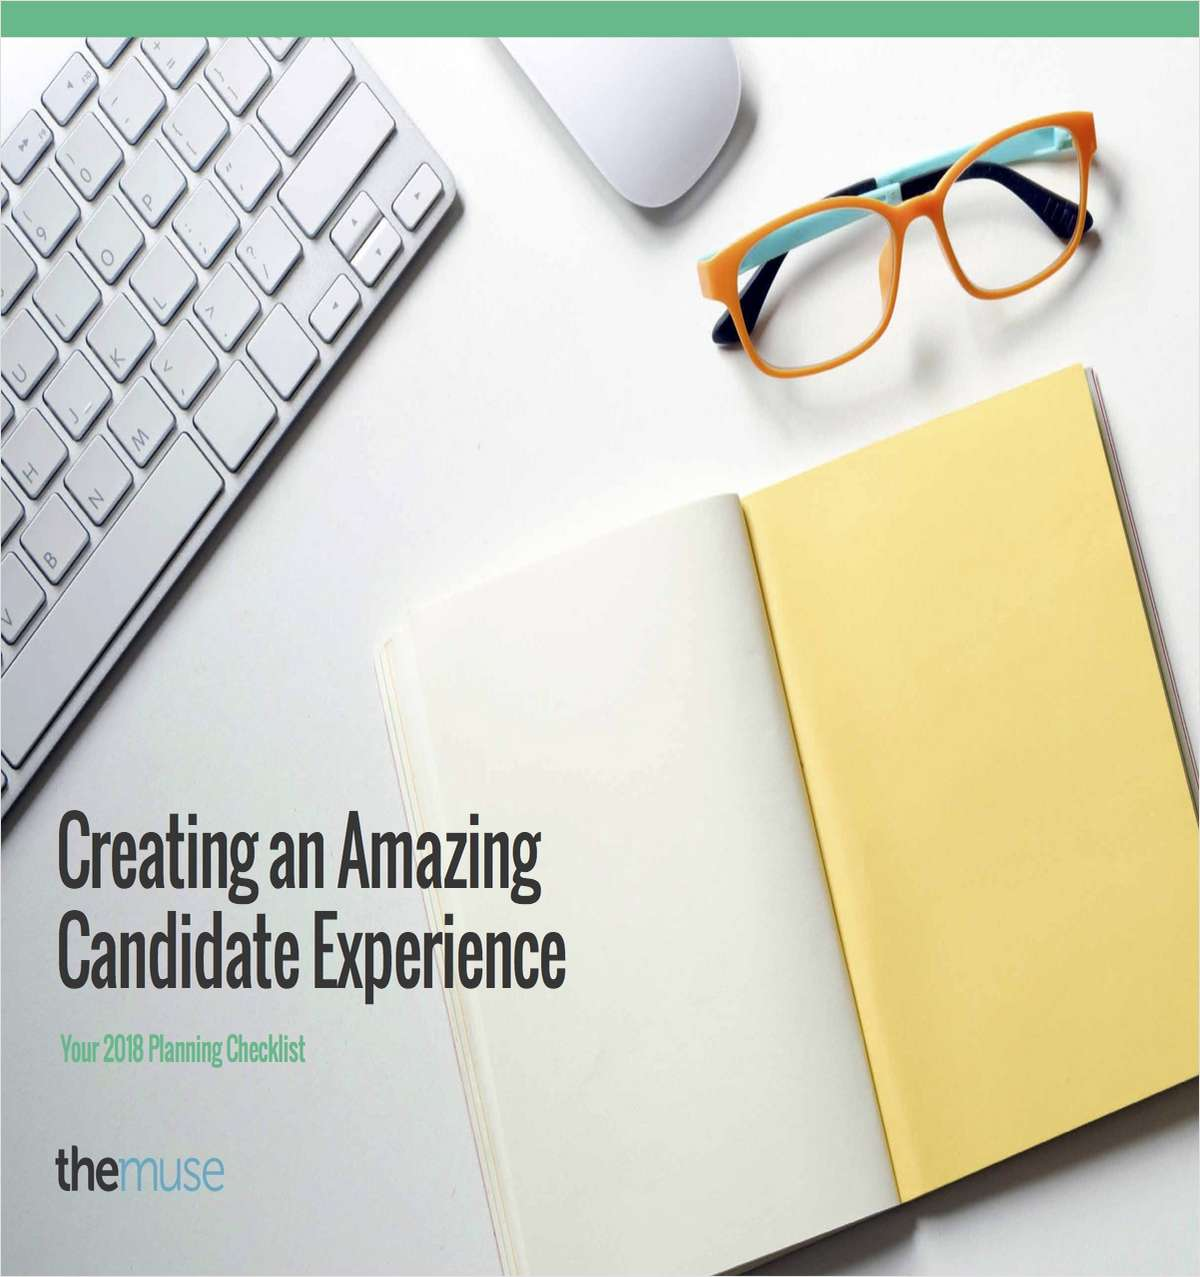 Creating an Amazing Candidate Experience Checklist